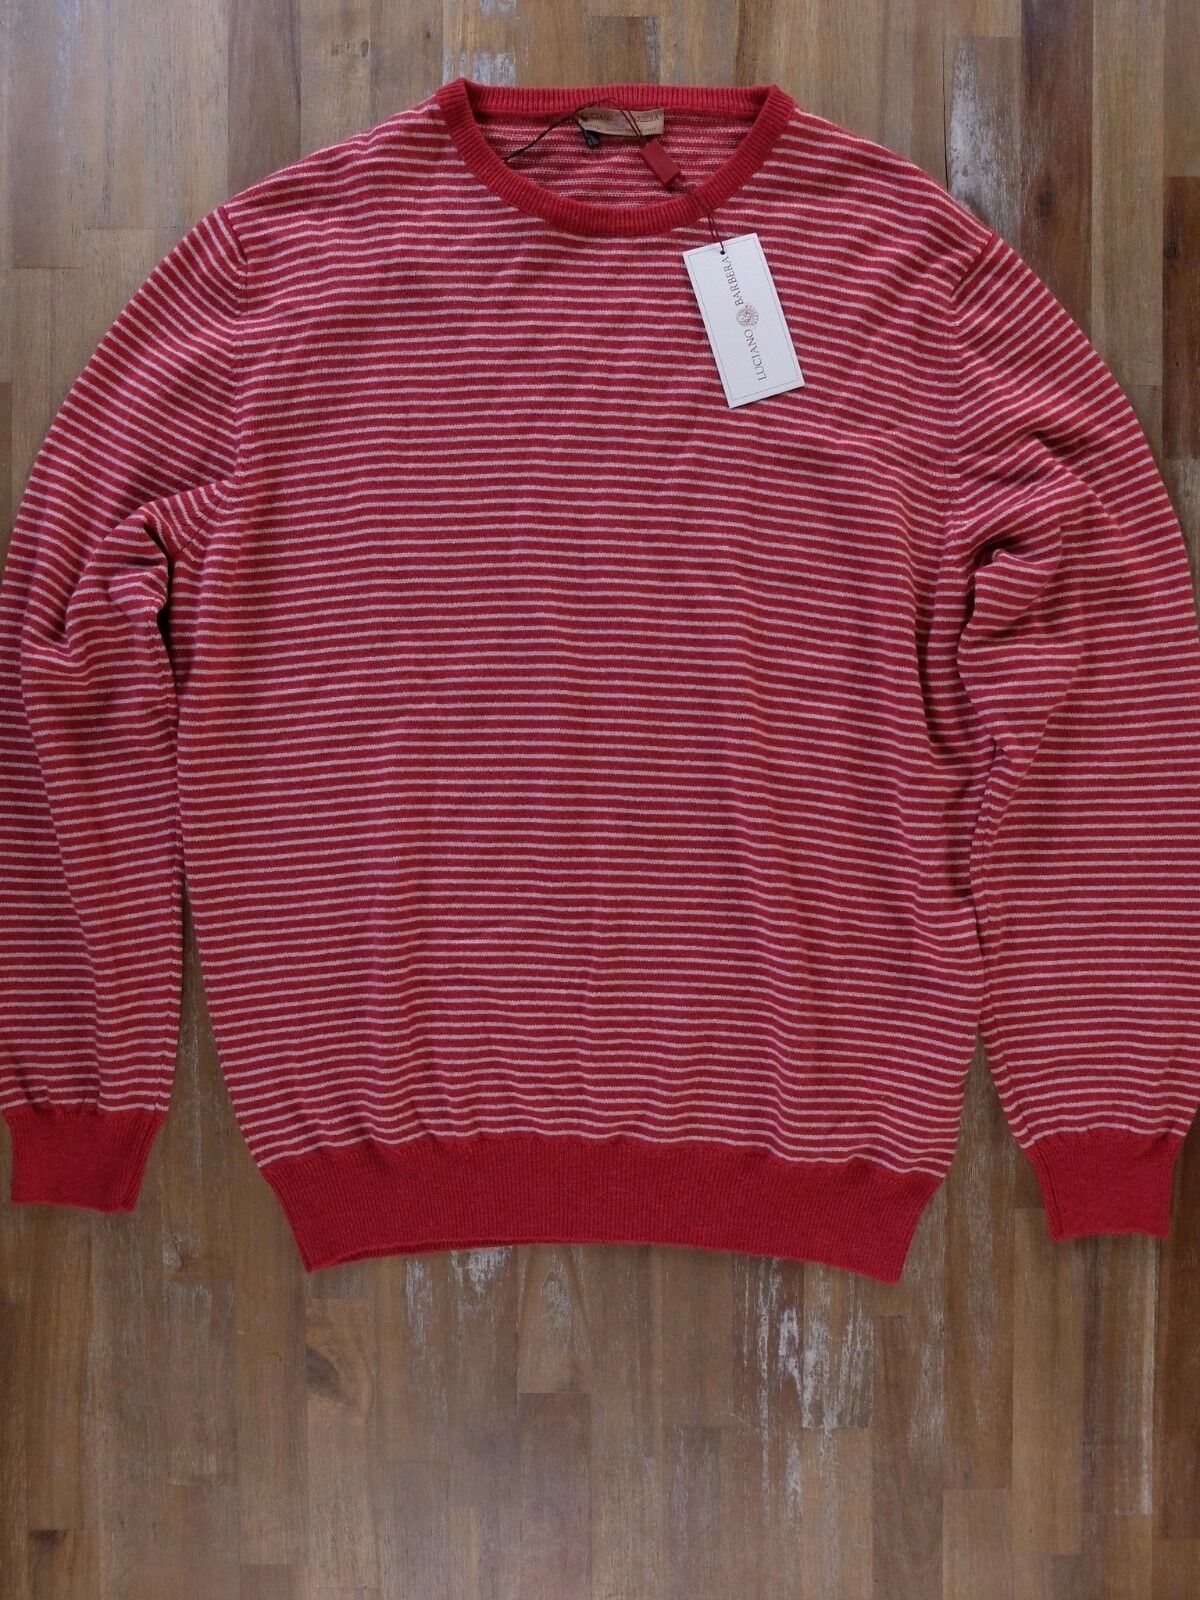 LUCIANO BARBERA 100% cashmere ROT striped sweater authentic - Größe XL / 54 - NWT